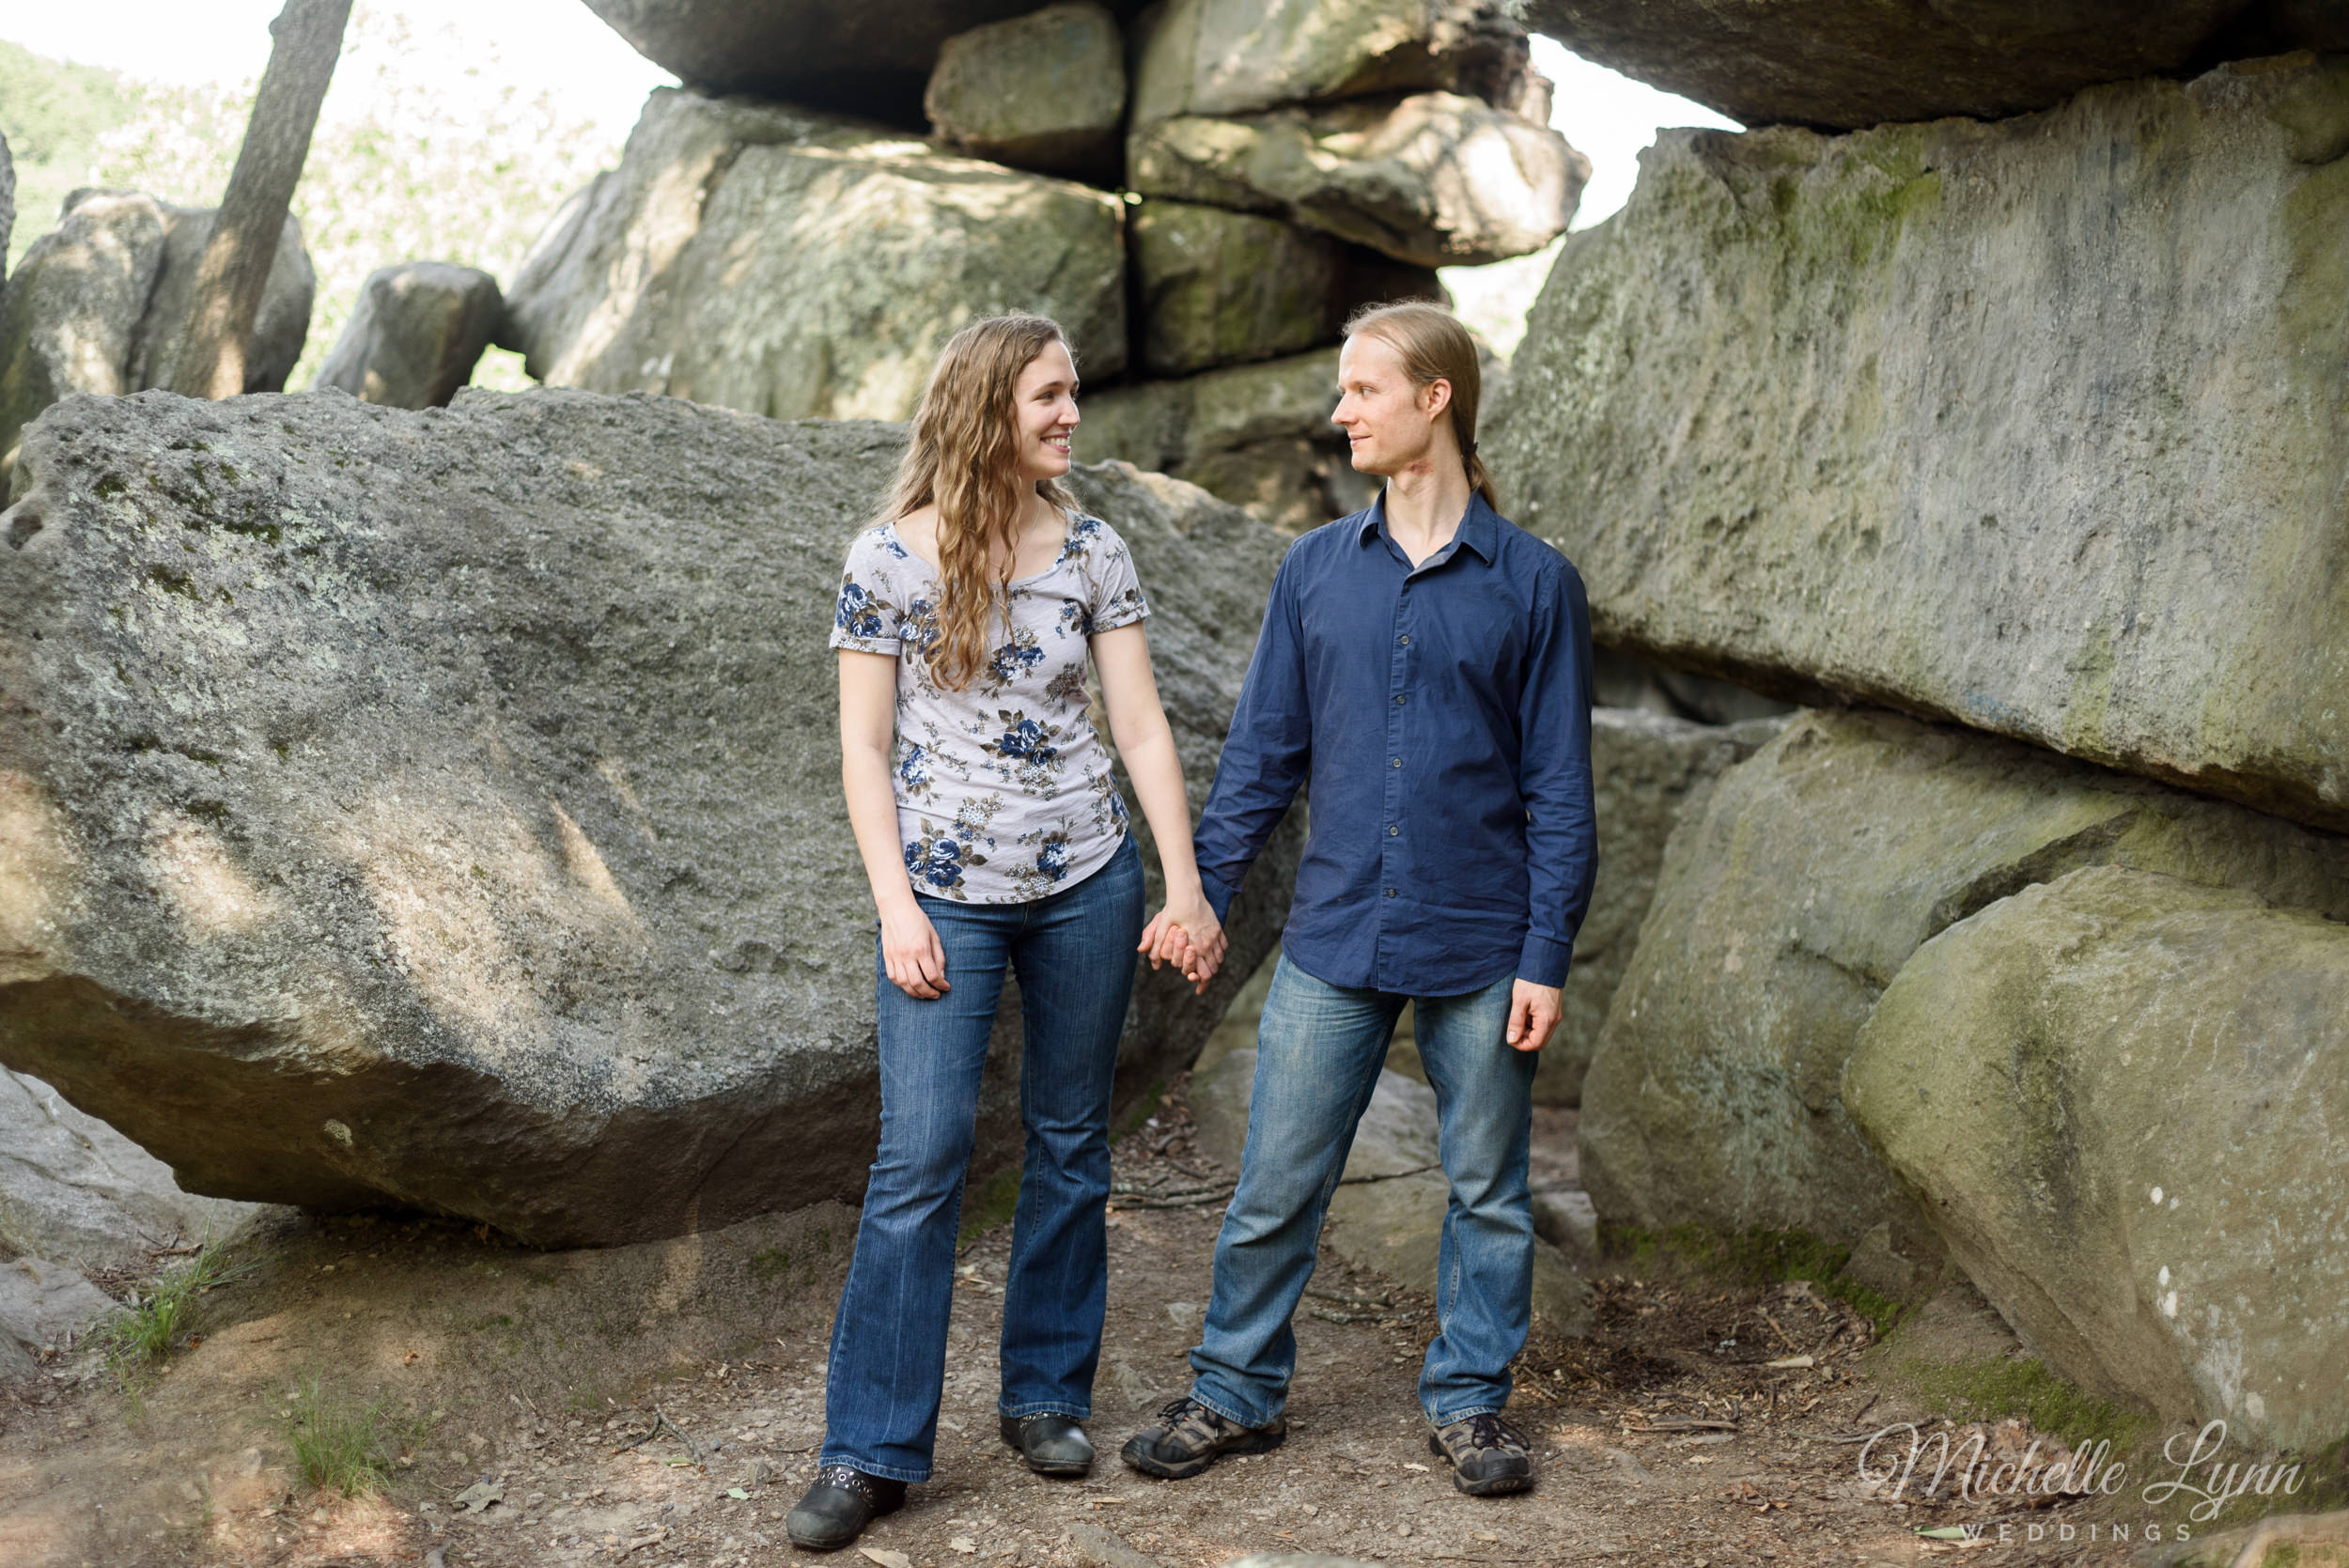 mlw-rocks-state-park-maryland-engagement-photos-17.jpg